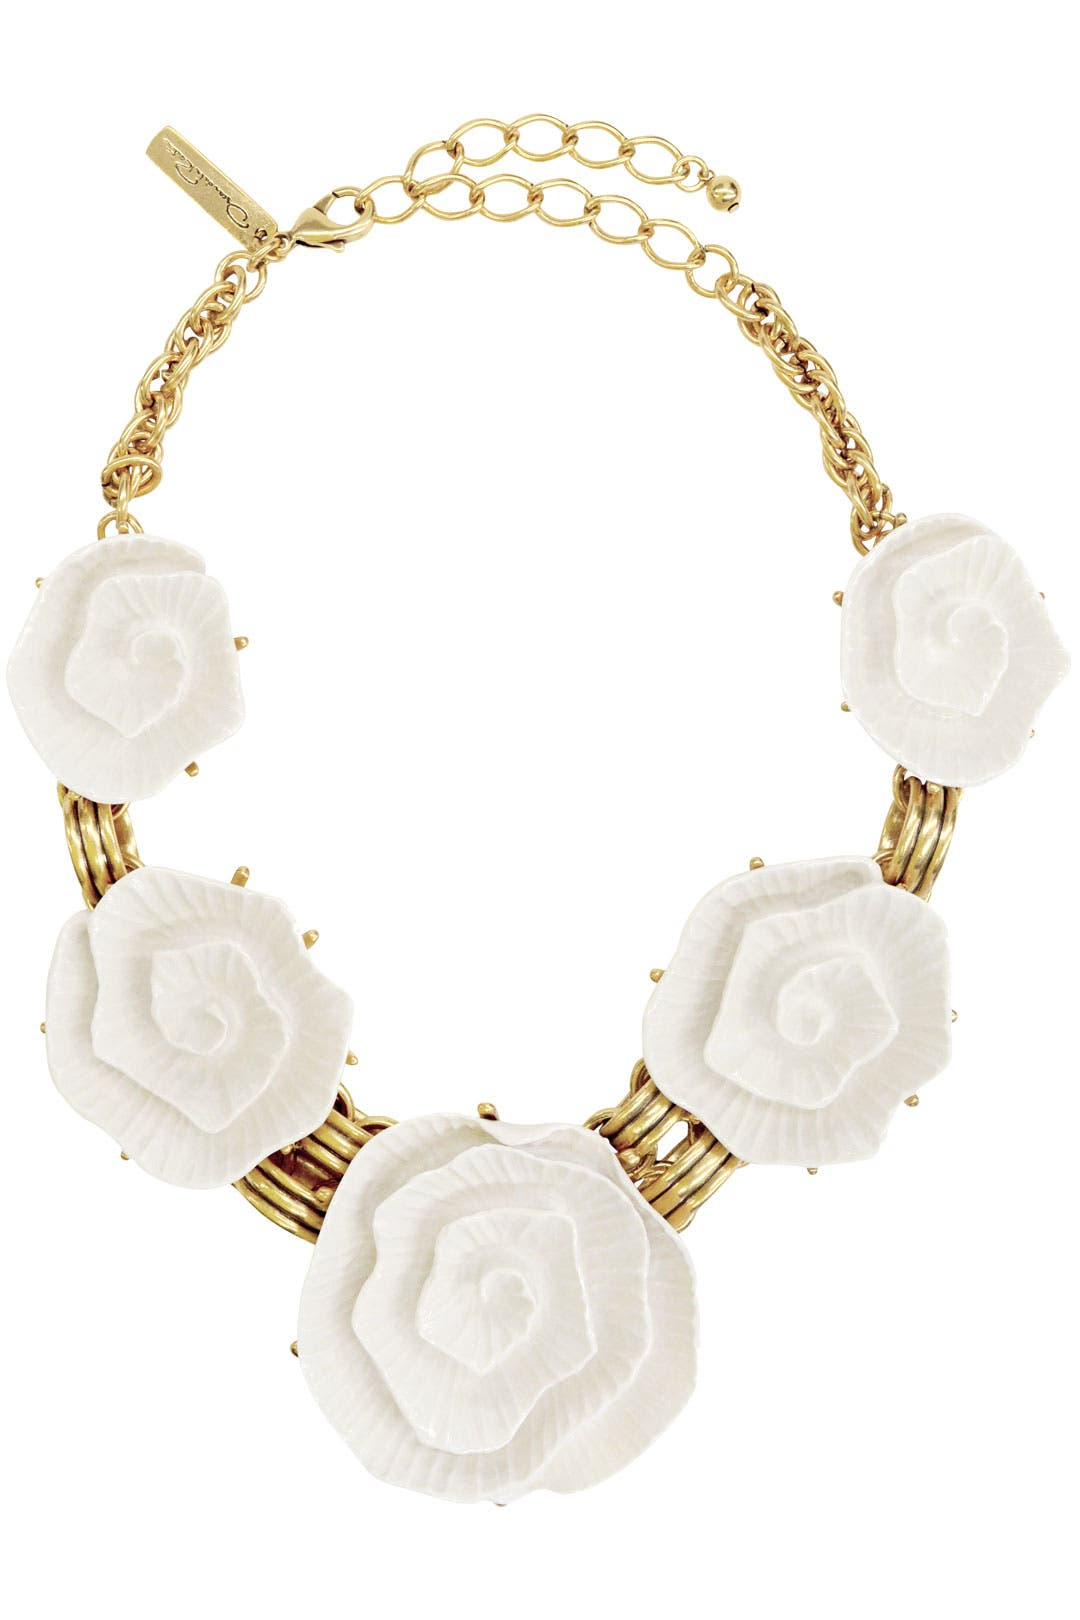 Blanca Rose Necklace by Oscar de la Renta